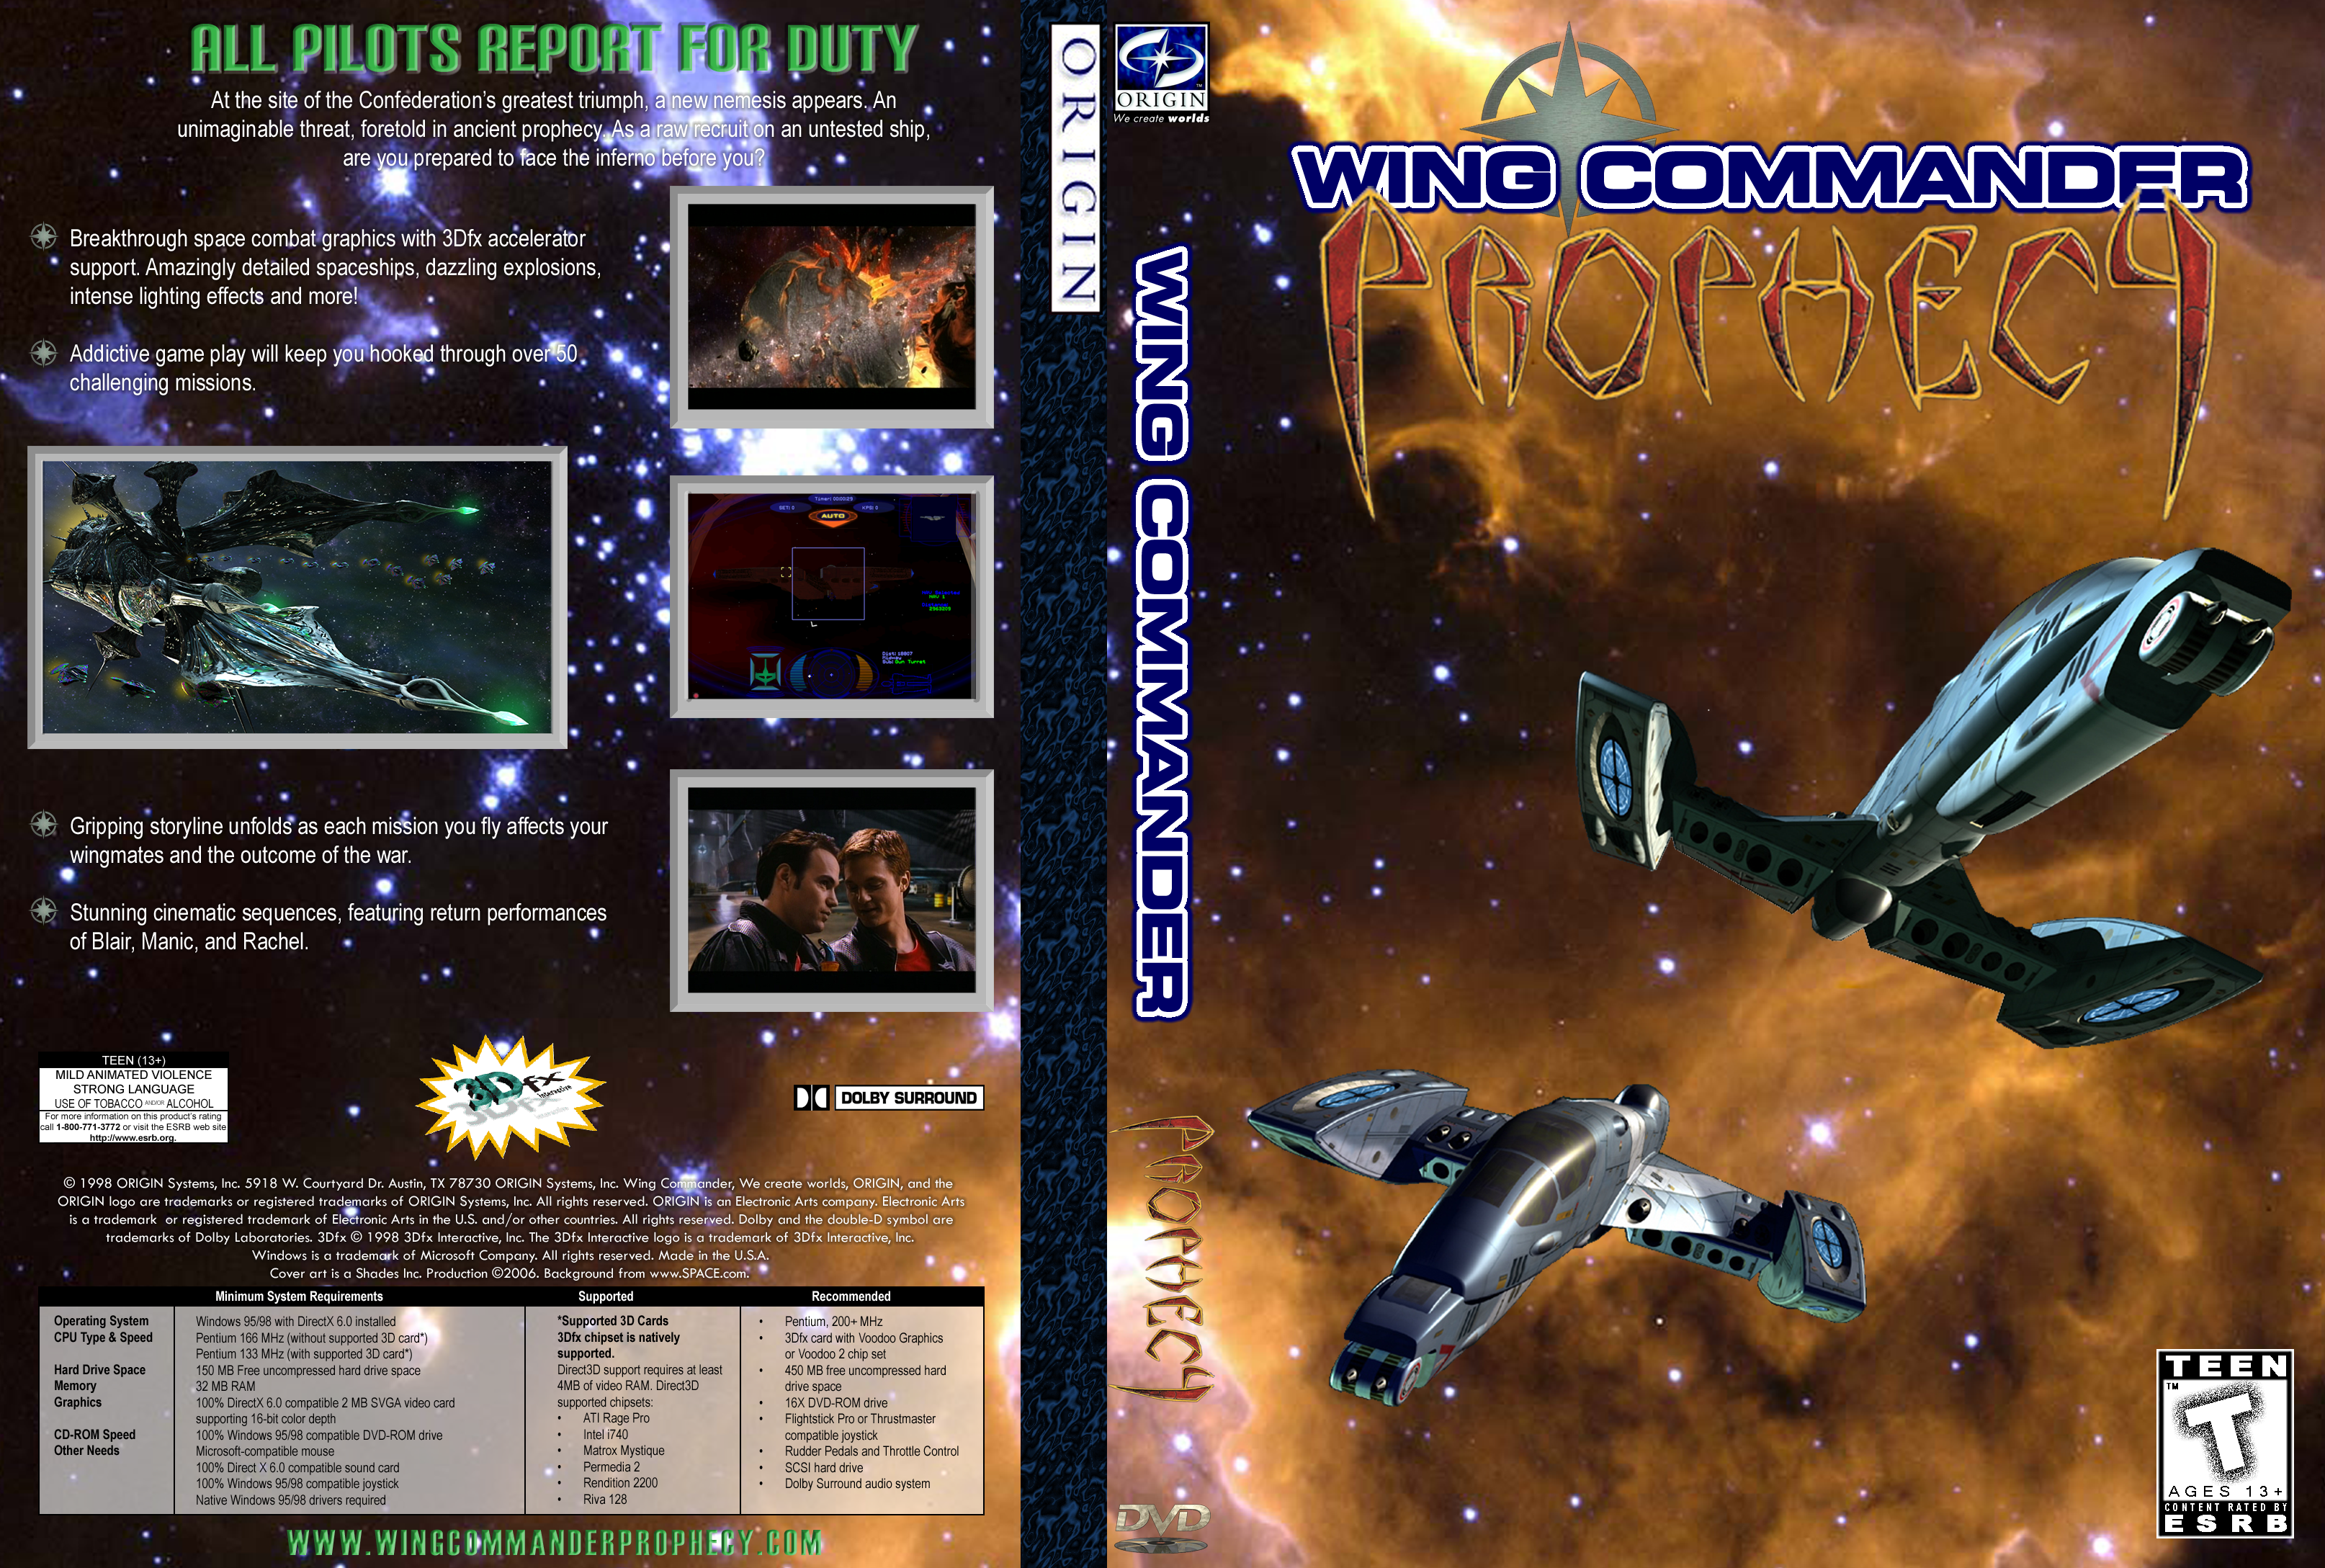 News of august 11 2007 wing commander cic for Wing commander prophecy